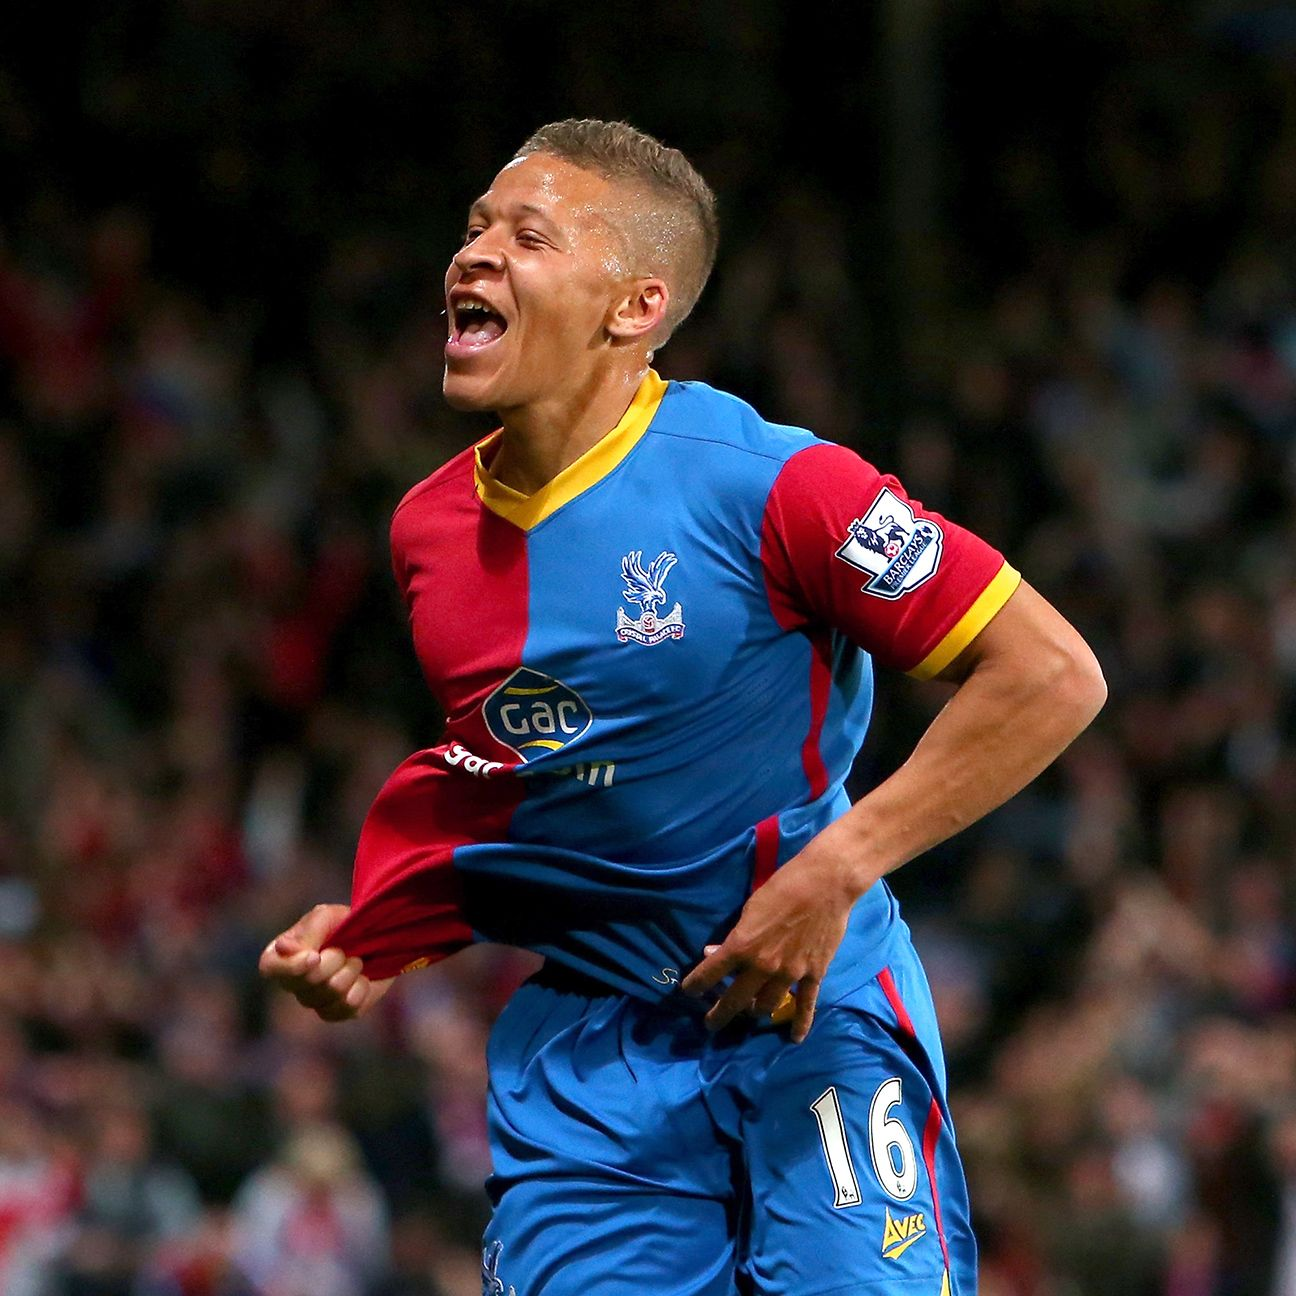 Liverpool know only too well the threat posed by Dwight Gayle and Crystal Palace at Selhurst Park.